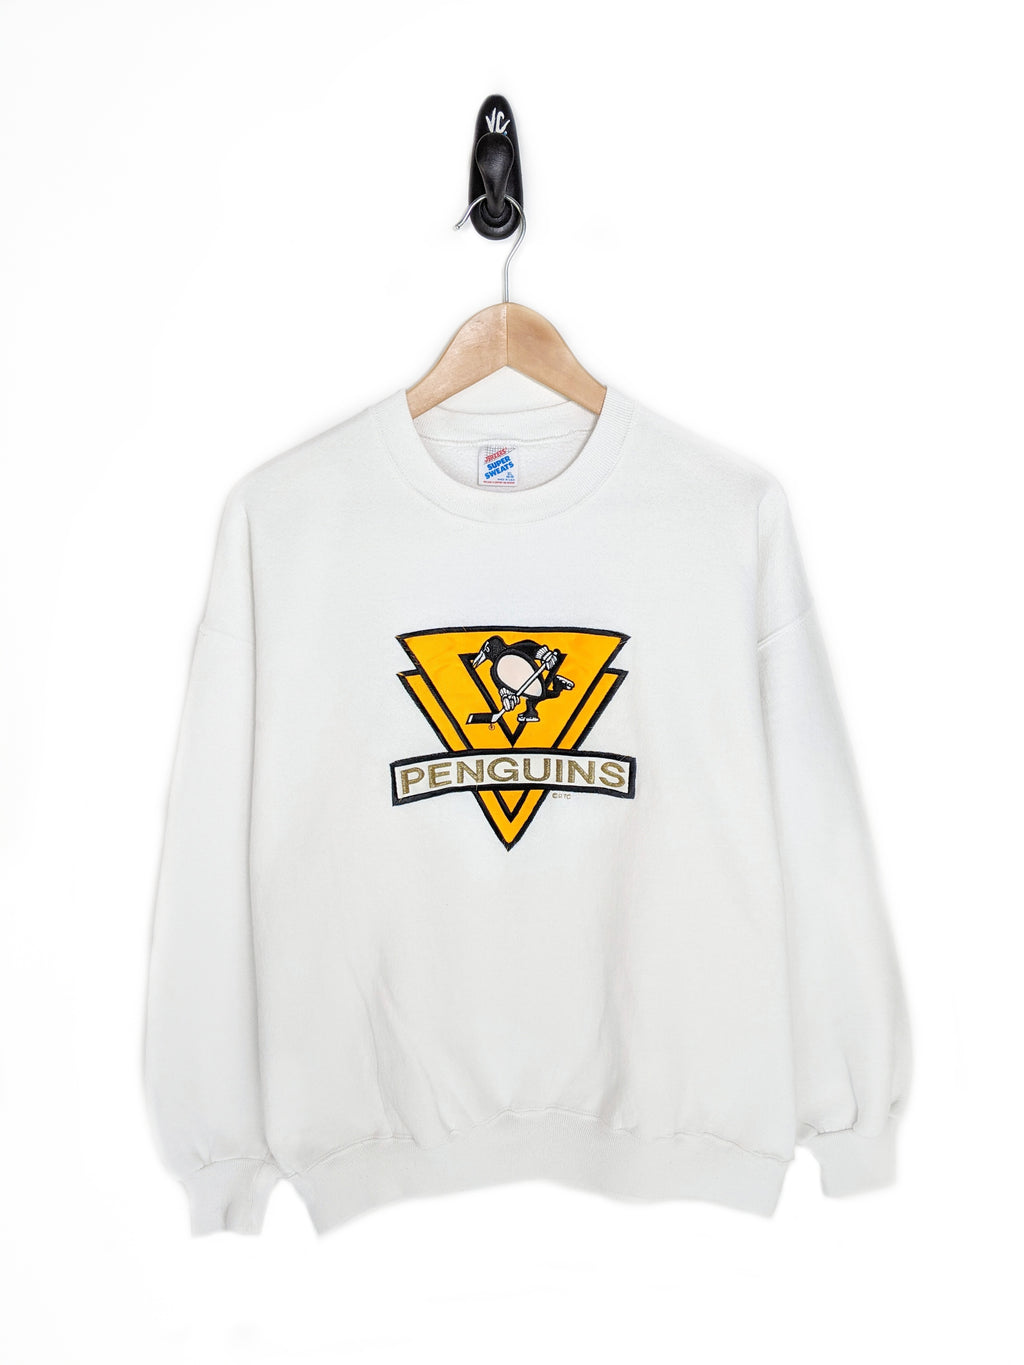 90's Penguins Sweatshirt (XL)